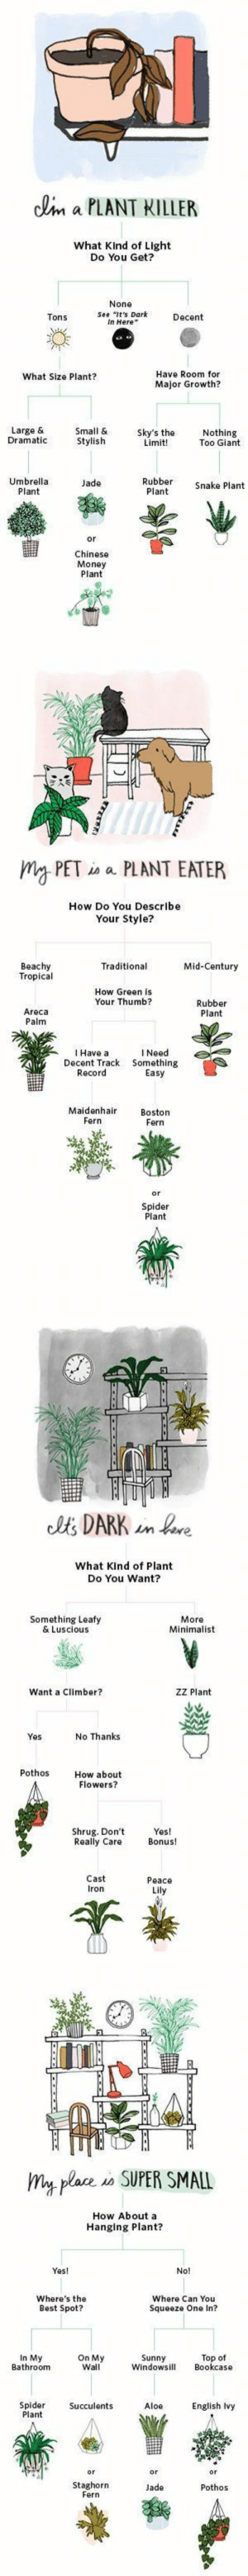 herbwicc:  plantinghuman:  Funny way to find out which plant you might like to buy. Source:  apartmenttherapy.com  FOR MY FOLLOWERS THAT HAVE DIFFICULTY CARING FOR PLANTS AND ASK WHAT THEY SHOULD BUY, THIS IS REALLY GREAT!!  : clim a PLANT KILLER  What Kind of Light  Do You Get?  None  See it's Dark  In Here  Tons  Decent  Have Room for  Major Growth  What Size Plant?  Large &  Dramatic  Small &  Stylish  Sky's the  Limit!  Nothing  Too Giant  Umbrella  Plant  Rubber Snake Plant  Plant  Jade  or  Chinese  Money  Plant   久똑  mgPETa a PLANT EATER  How Do You Describe  Your Style?  Beachy  Tropical  Traditional  Mid-Century  How Green is  Your Thumb?  Rubber  Plant  Areca  Palm  I Have a  l Need  Decent Track Something  Record  Easy  Maidenhair  Fern  Boston  Fern  Spider  Plant   What Kind of Plant  Do You Want?  Something Leafy  & Luscious  More  Minimalist  Want a Climber?  ZZ Plant  Yes  No Thanks  Pothos  How about  Flowers?  Shrug. Don't Yes!  Really Care Bonus!  Cast  Iron  Peace  Lily   my plare o SUPER SMALL  How About a  Hanging Plant?  Yes!  No!  Where's the  Best Spot?  Where Can You  Squeeze One In?  . MOn My windowsil  Sunny  Windowsi Bookcase  Top of  Bathroom  Wall  Spider Succulents Aloe English Ivy  Plant  Pothos  Staghorn  Fern  Jade herbwicc:  plantinghuman:  Funny way to find out which plant you might like to buy. Source:  apartmenttherapy.com  FOR MY FOLLOWERS THAT HAVE DIFFICULTY CARING FOR PLANTS AND ASK WHAT THEY SHOULD BUY, THIS IS REALLY GREAT!!